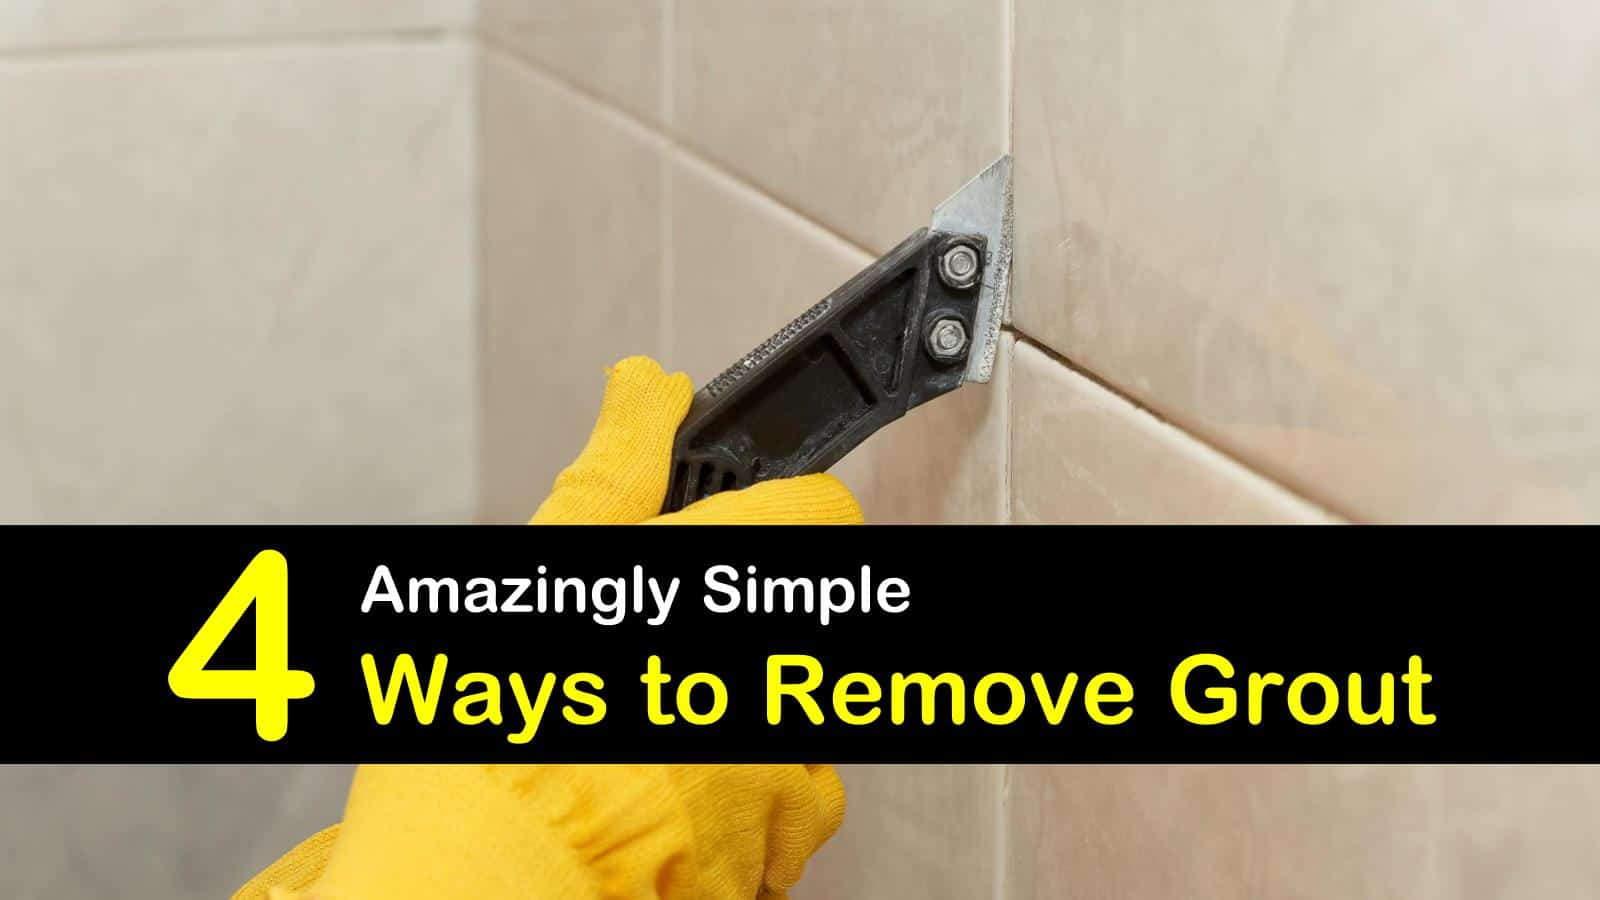 how to remove grout titleimg1